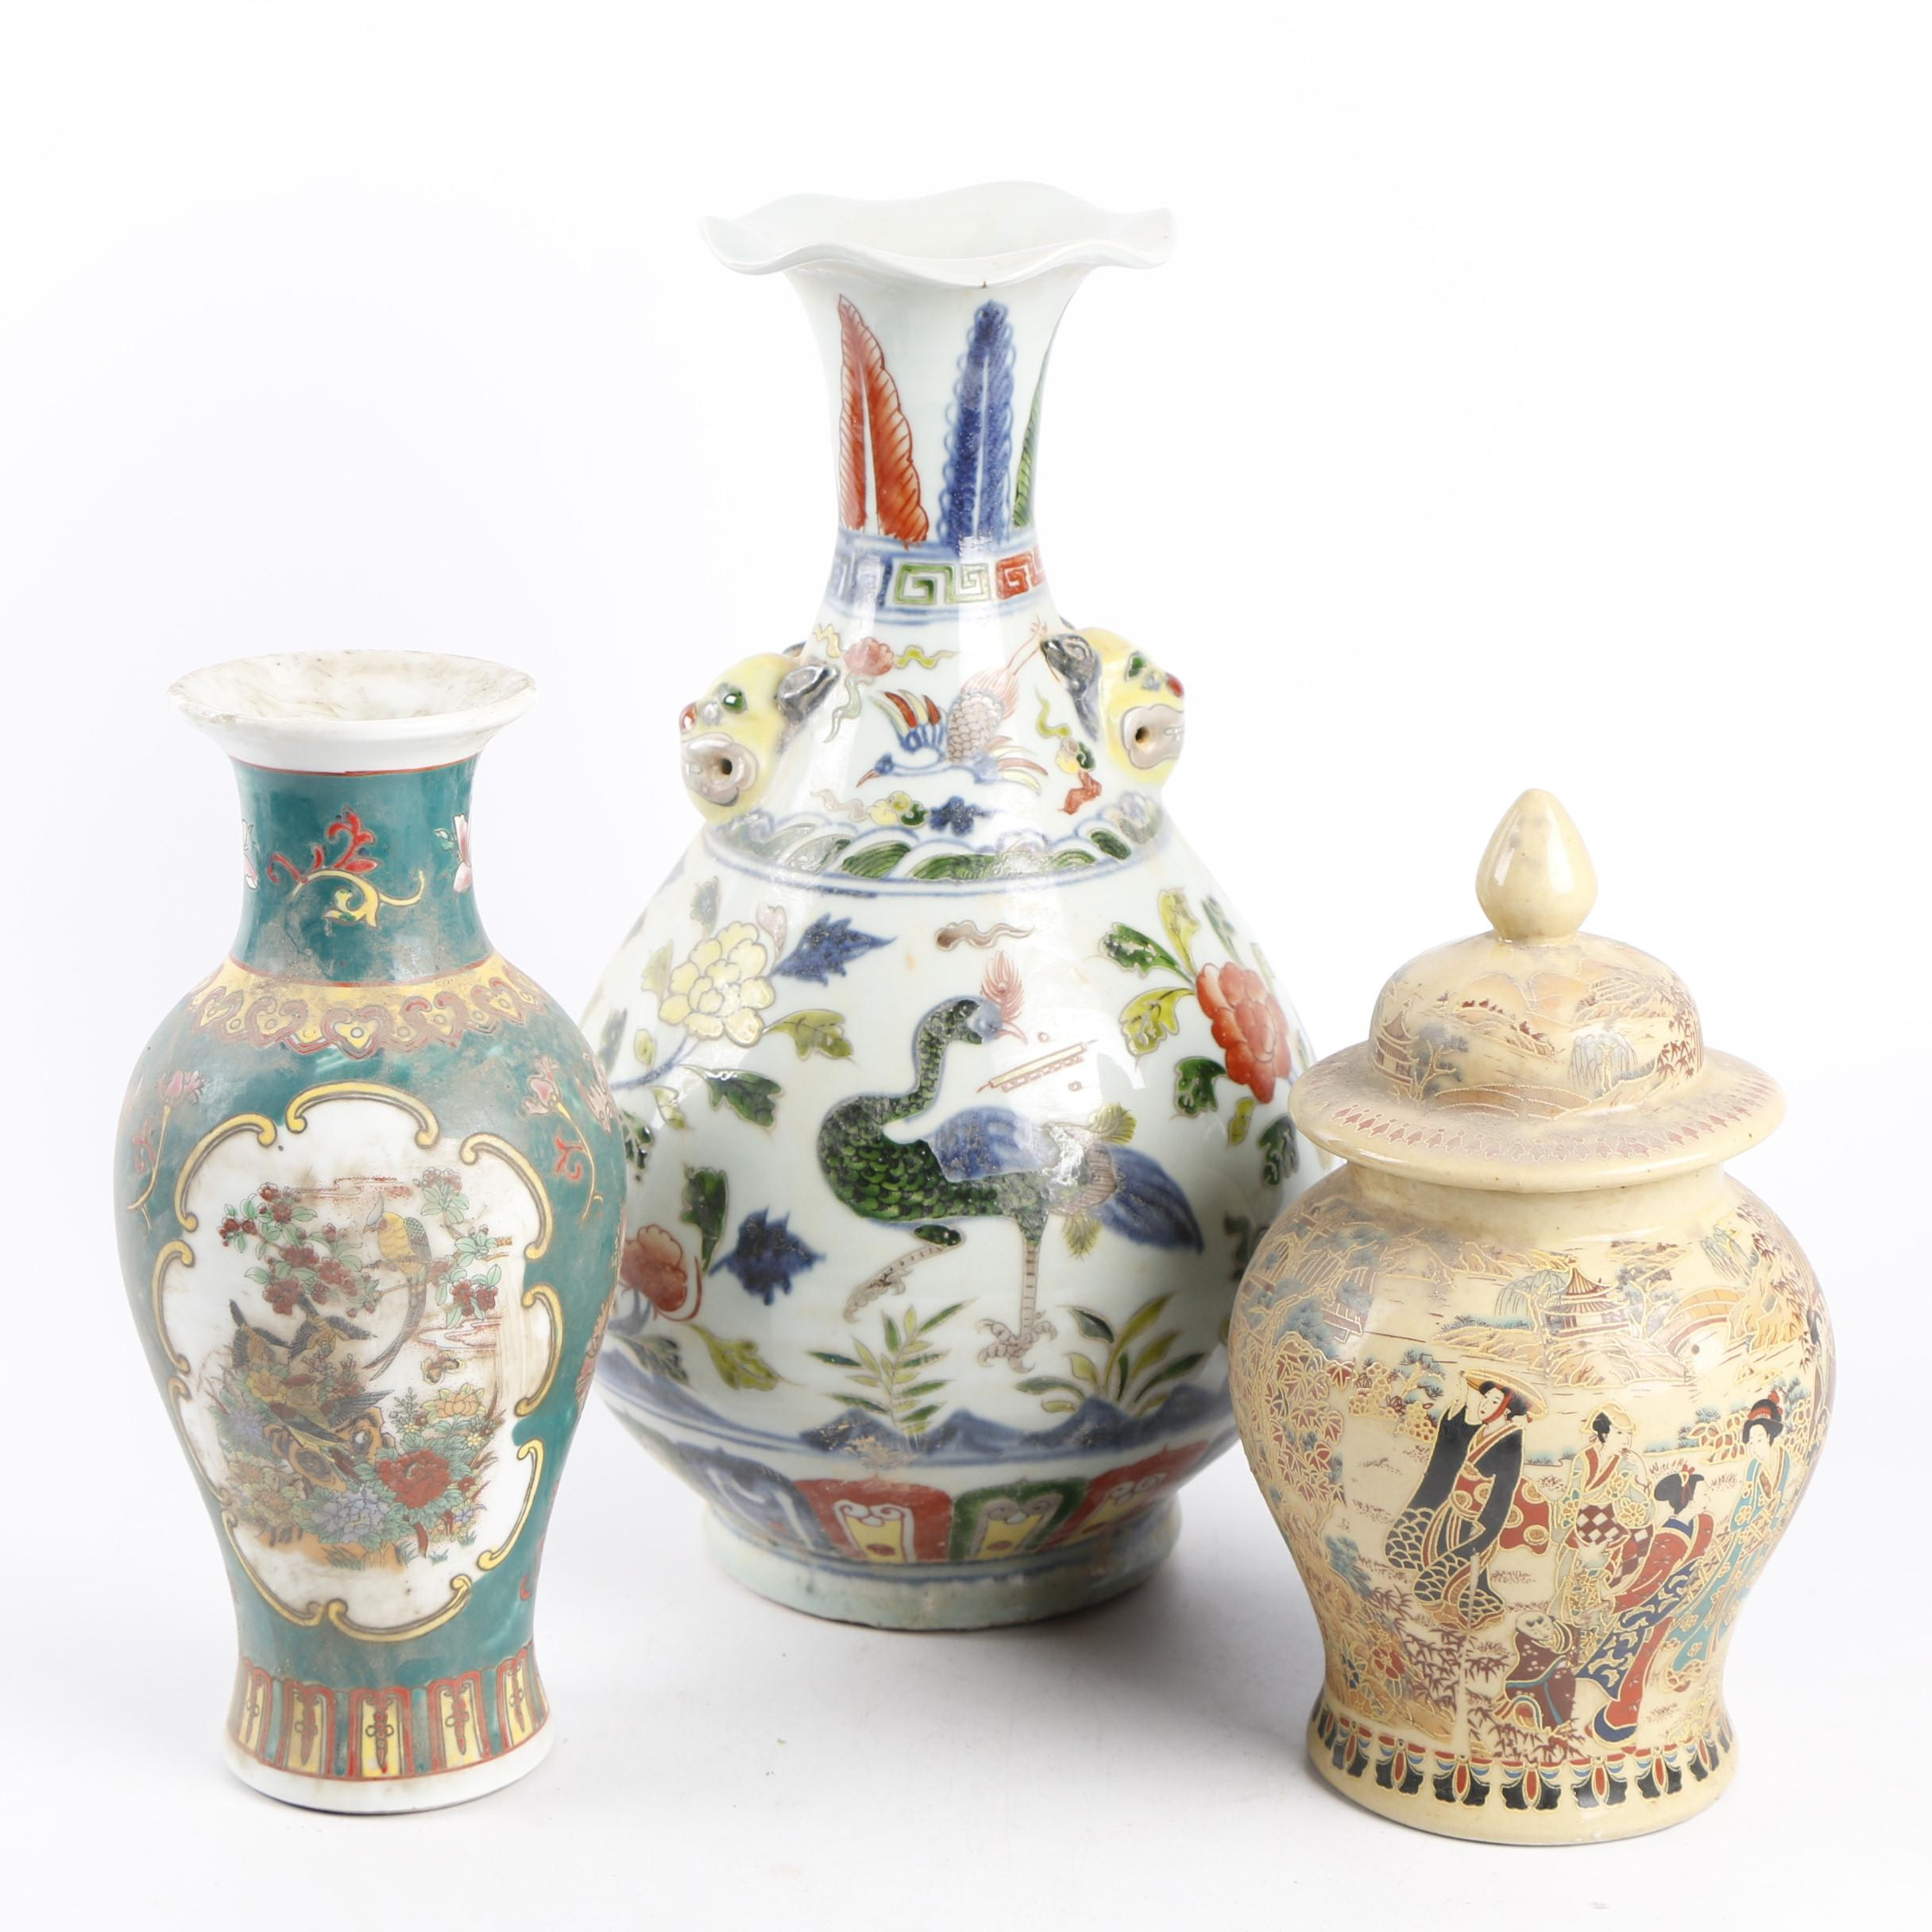 Chinese Decorative Porcelain Vases and Jar